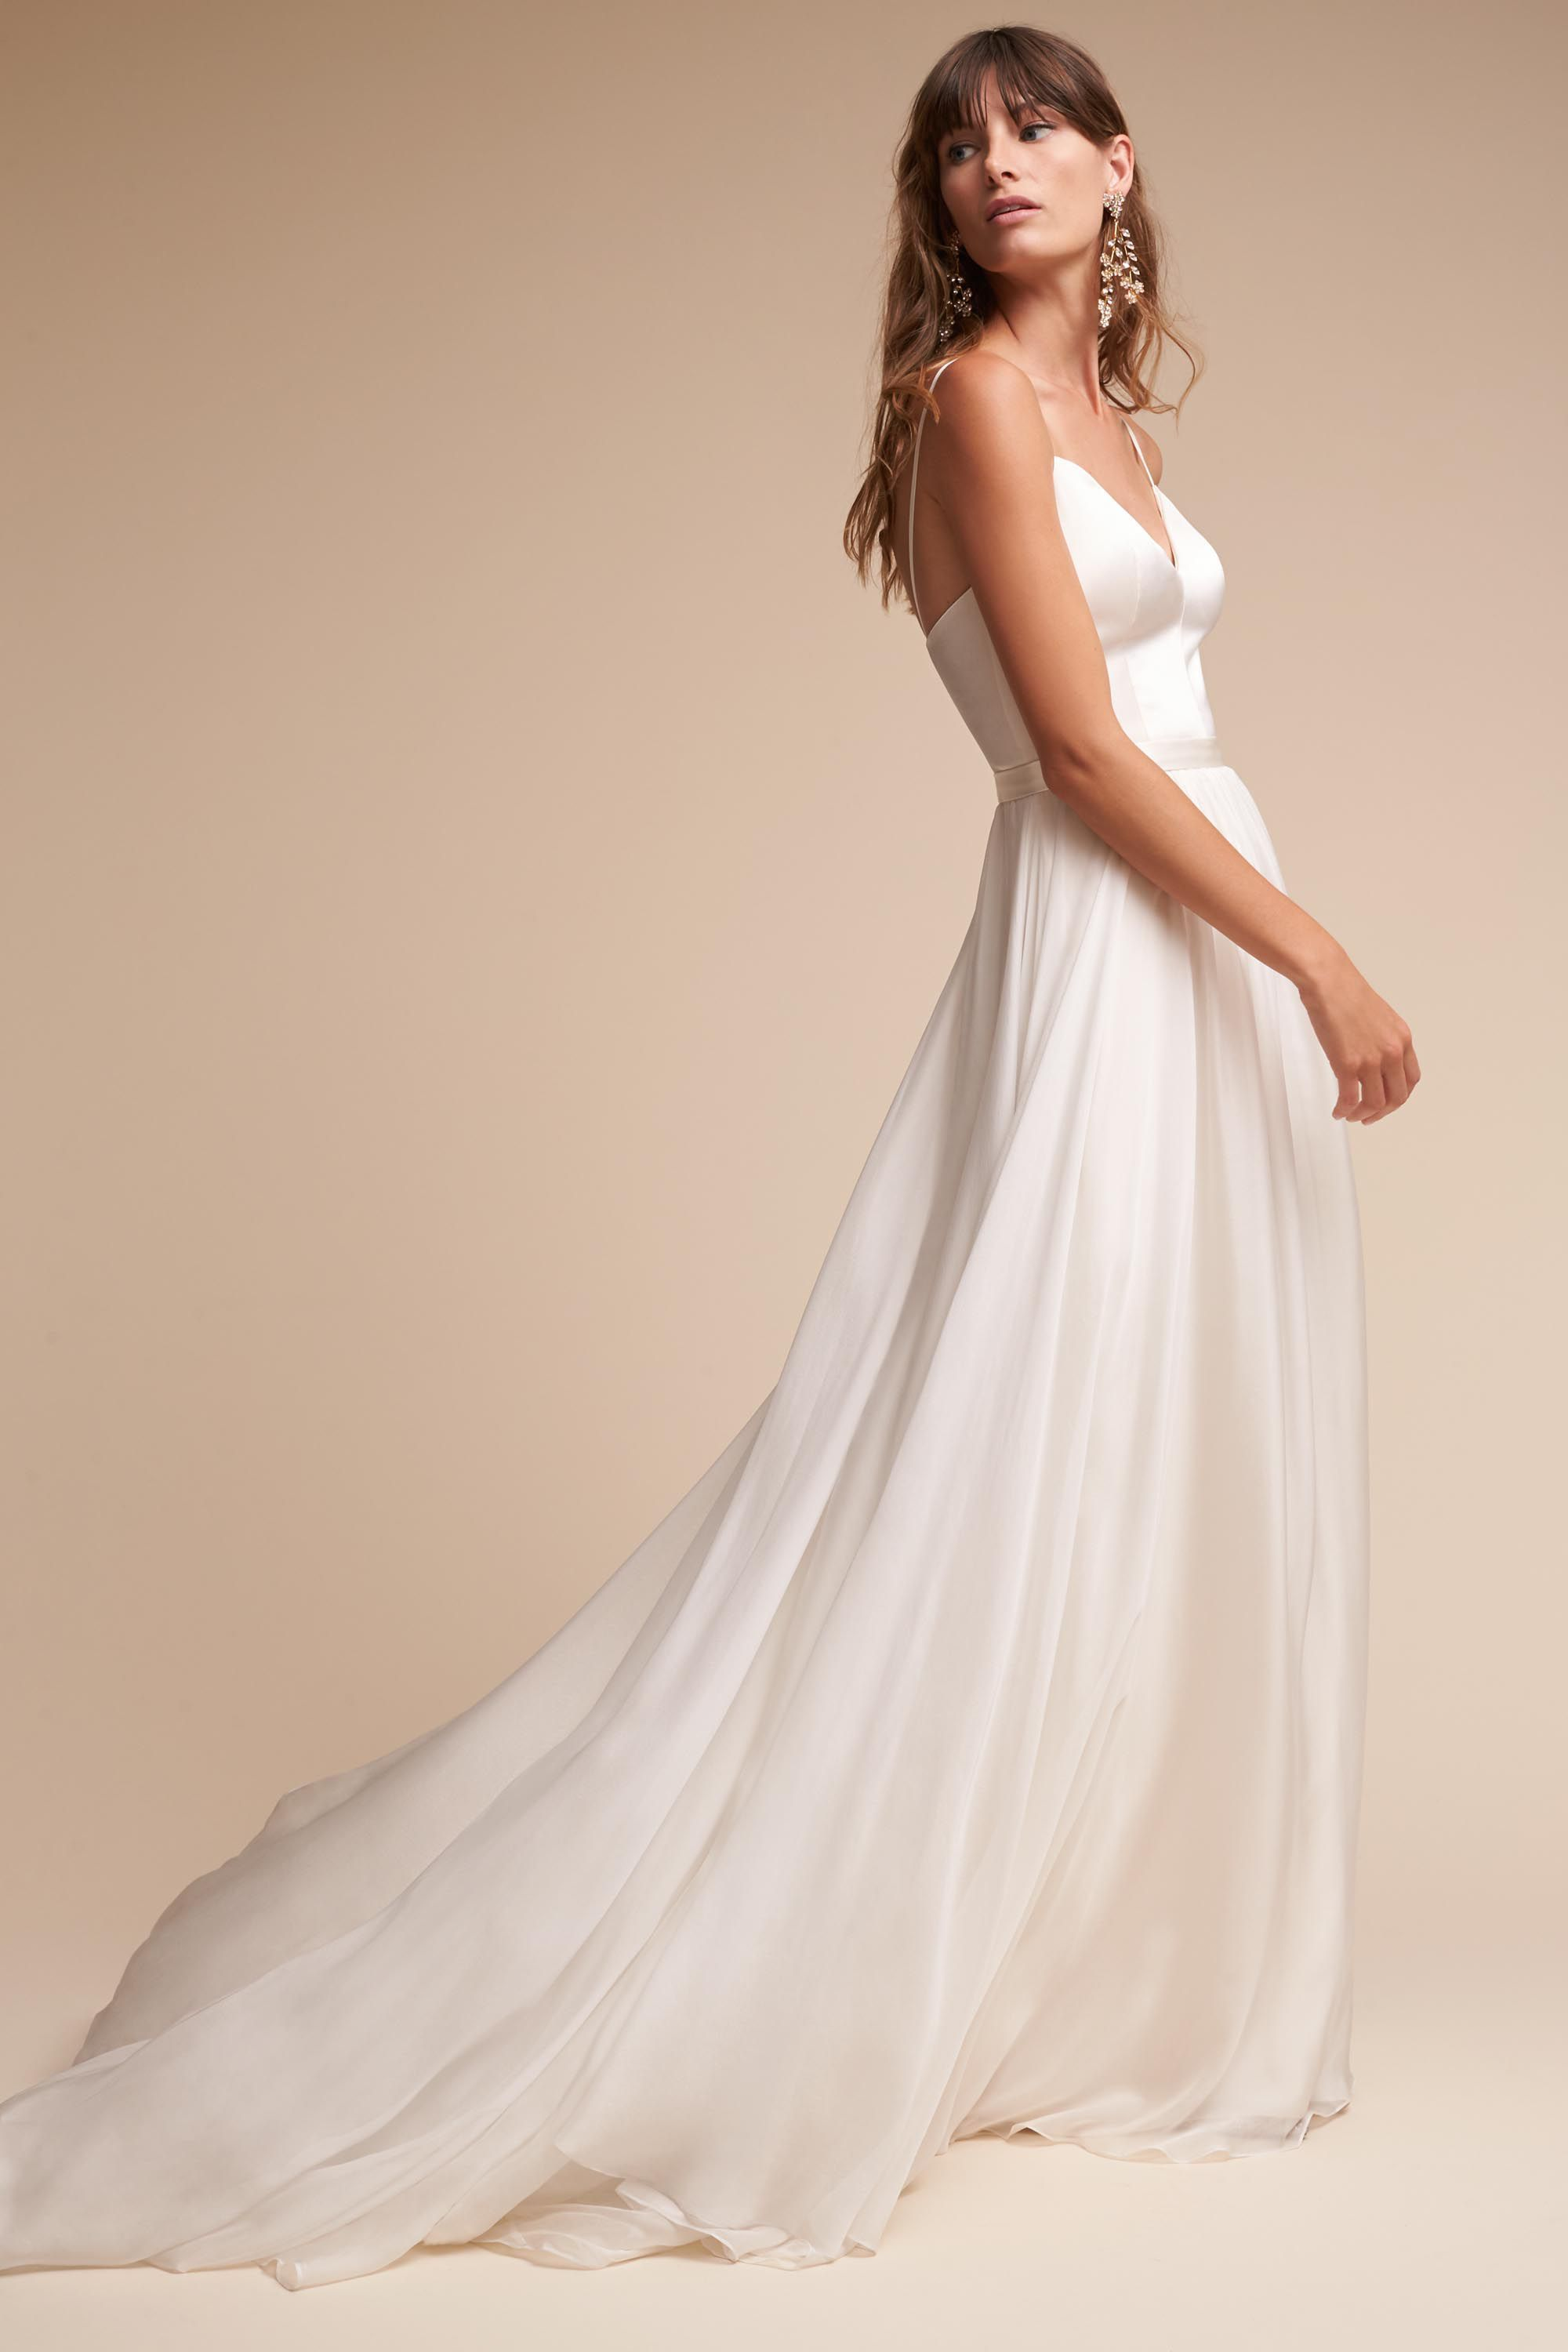 Wedding dresses for slim figures  Kameron Gown Looks like a wedding gown but I could see it being